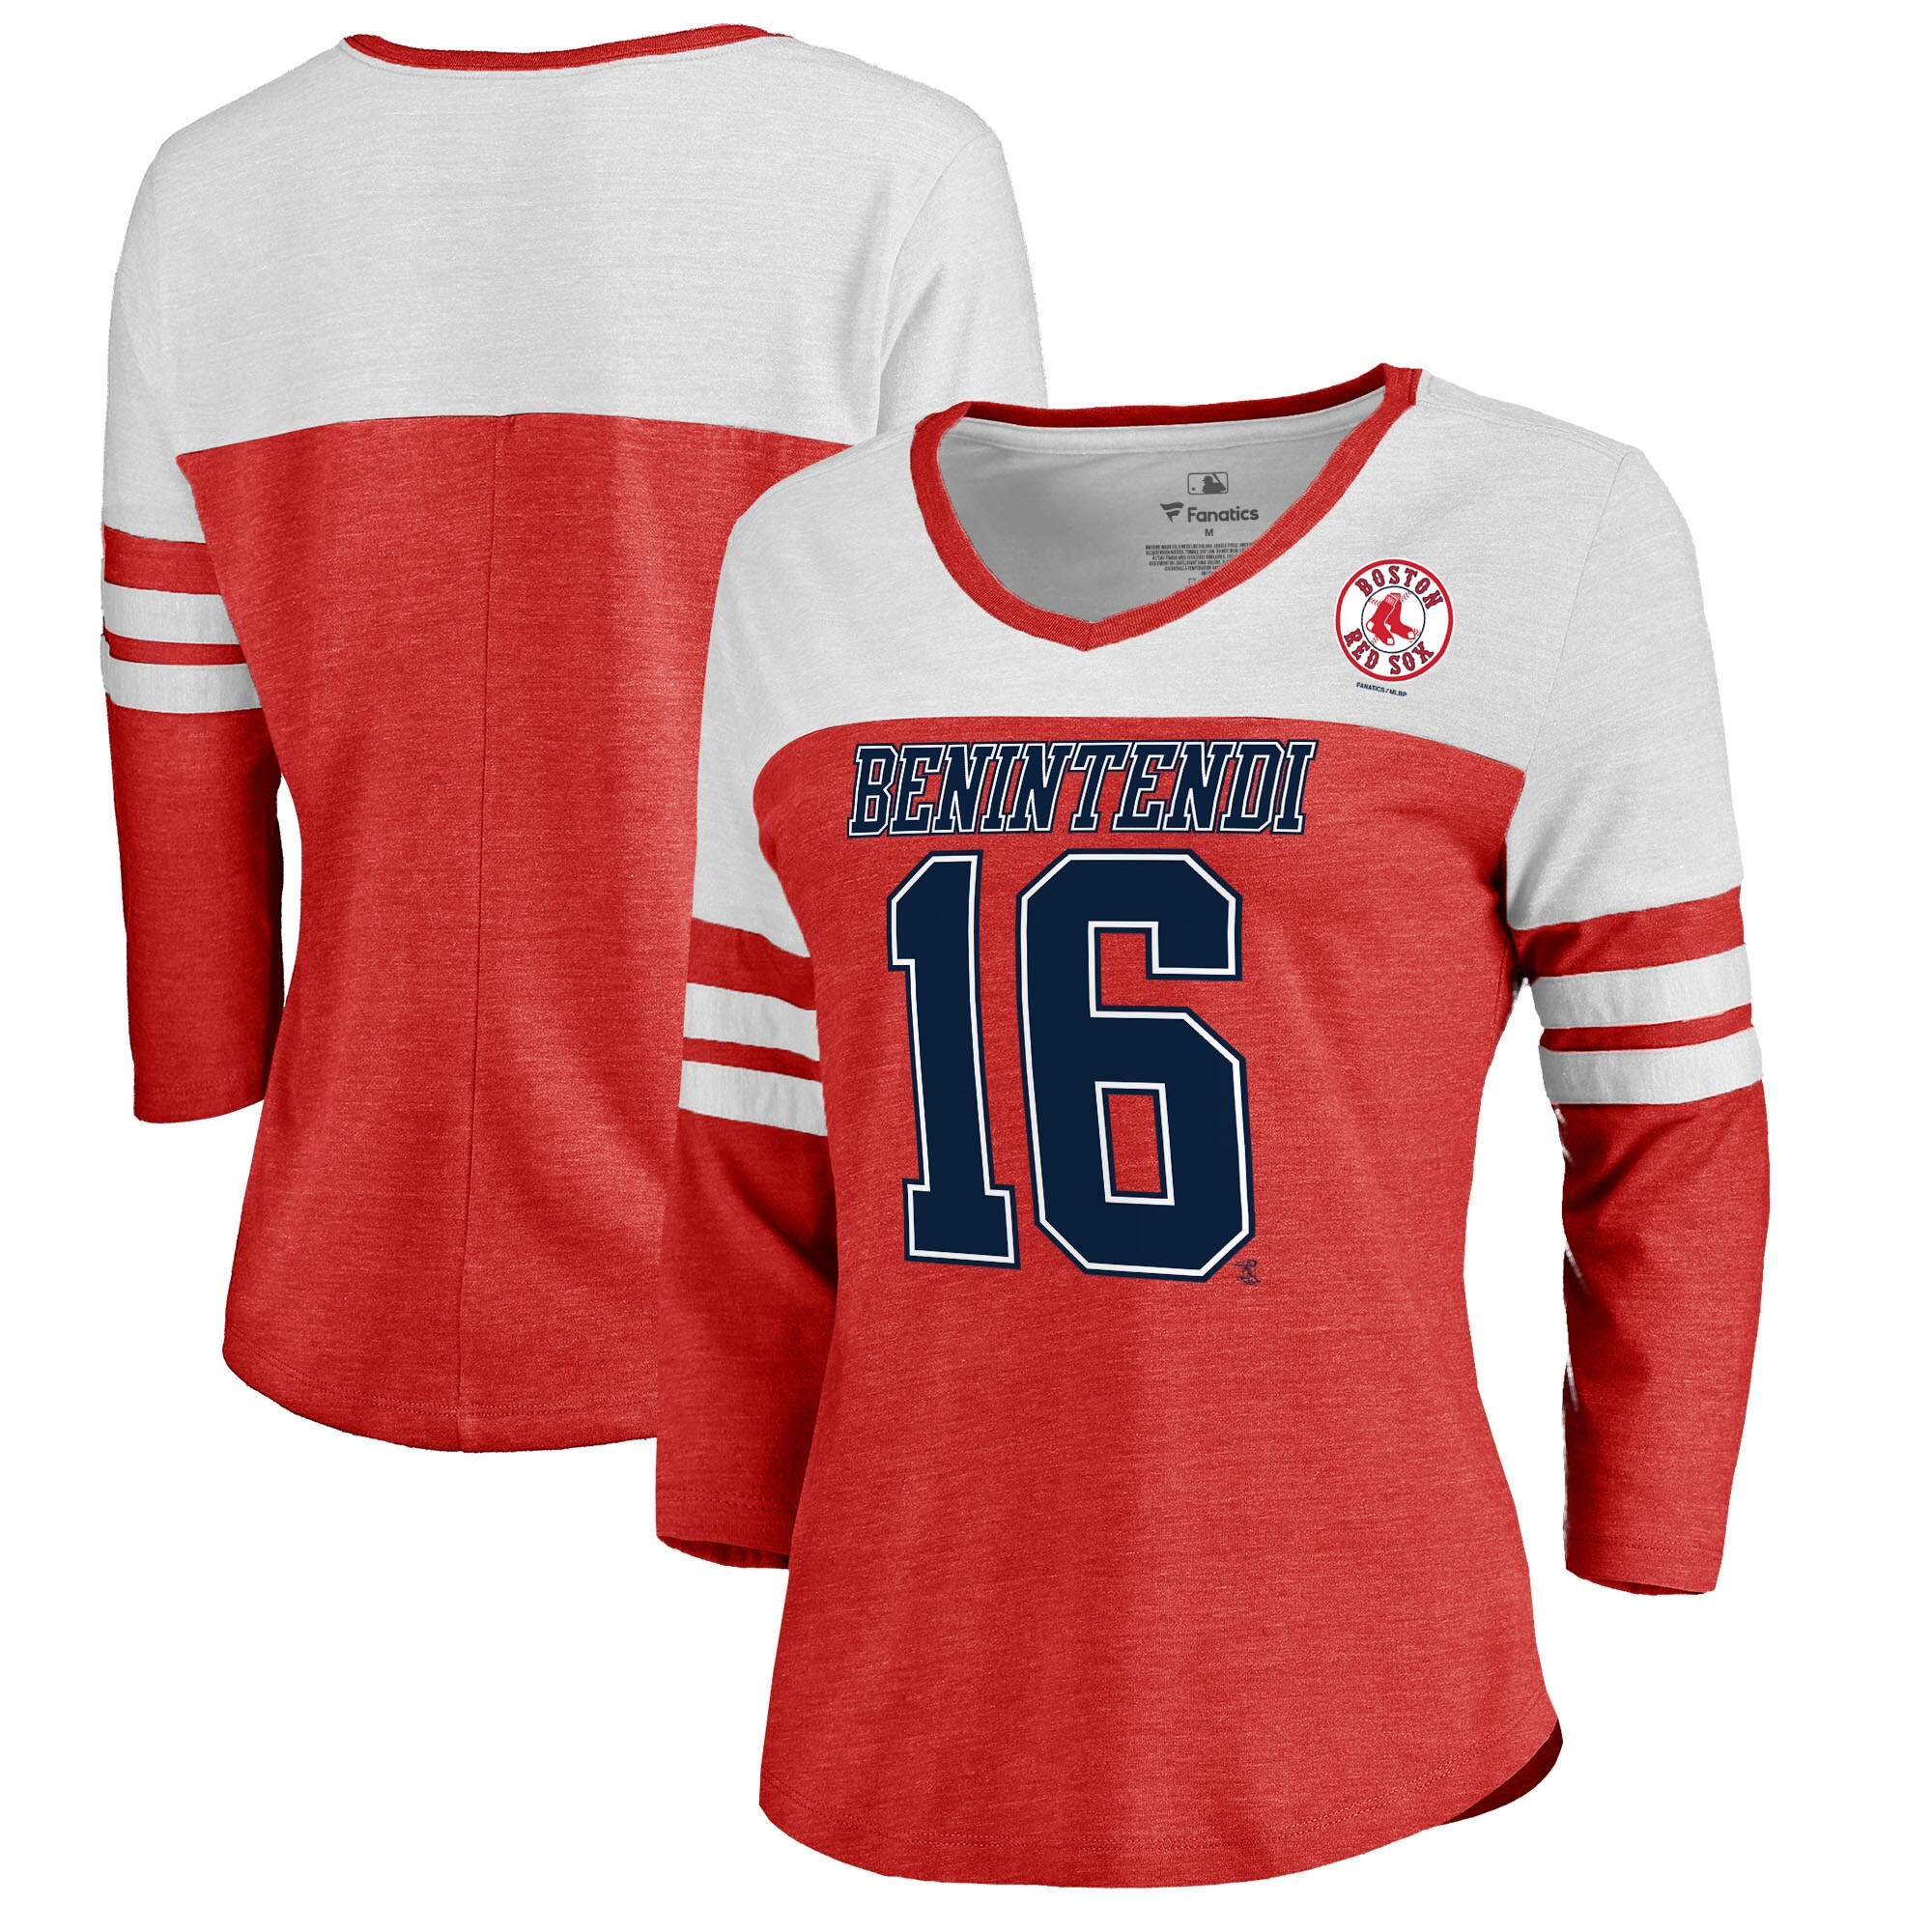 Andrew Benintendi Boston Red Sox Fanatics Branded Women's Ace Name & Number 3/4-Sleeve V-Neck T-Shirt - Red/White